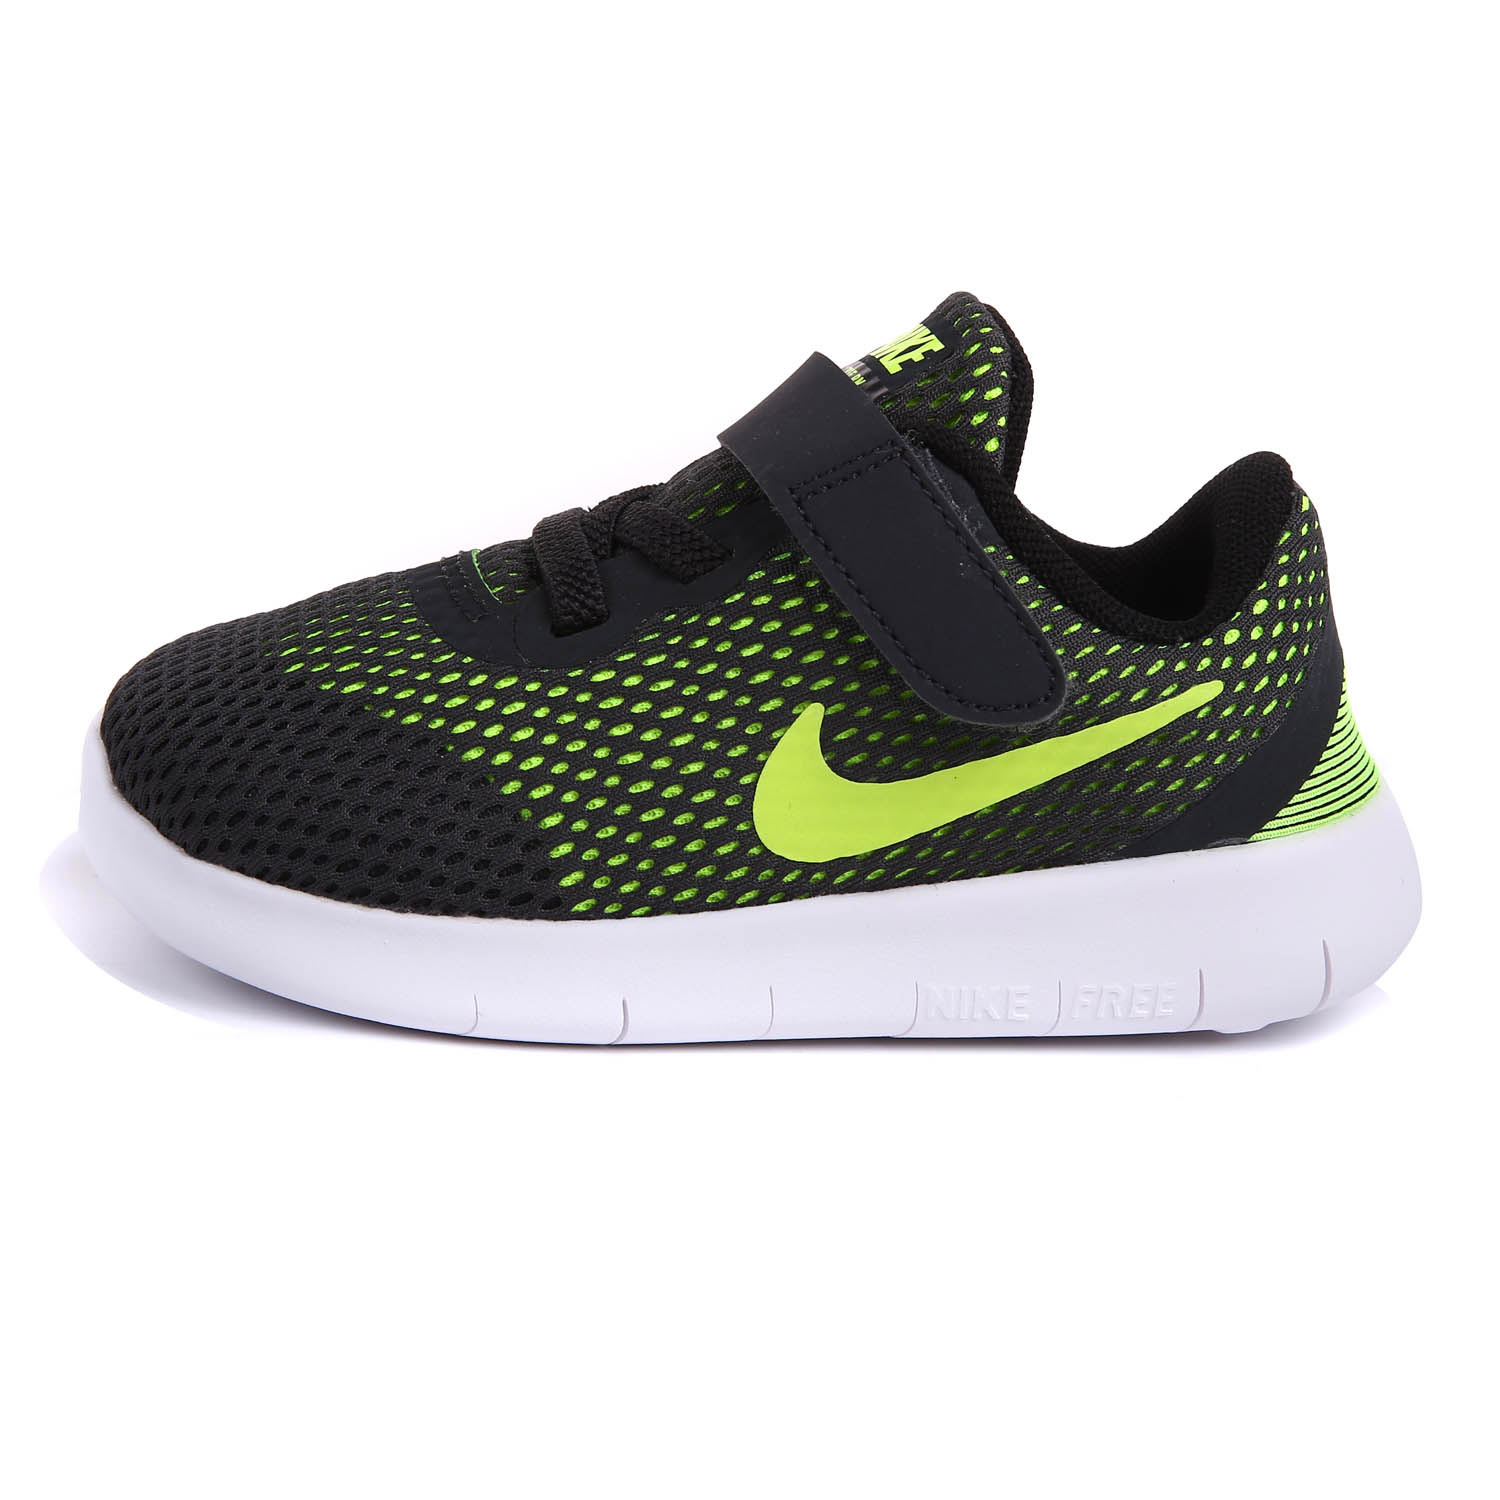 Nike Outlet Toddler Boy Shoes